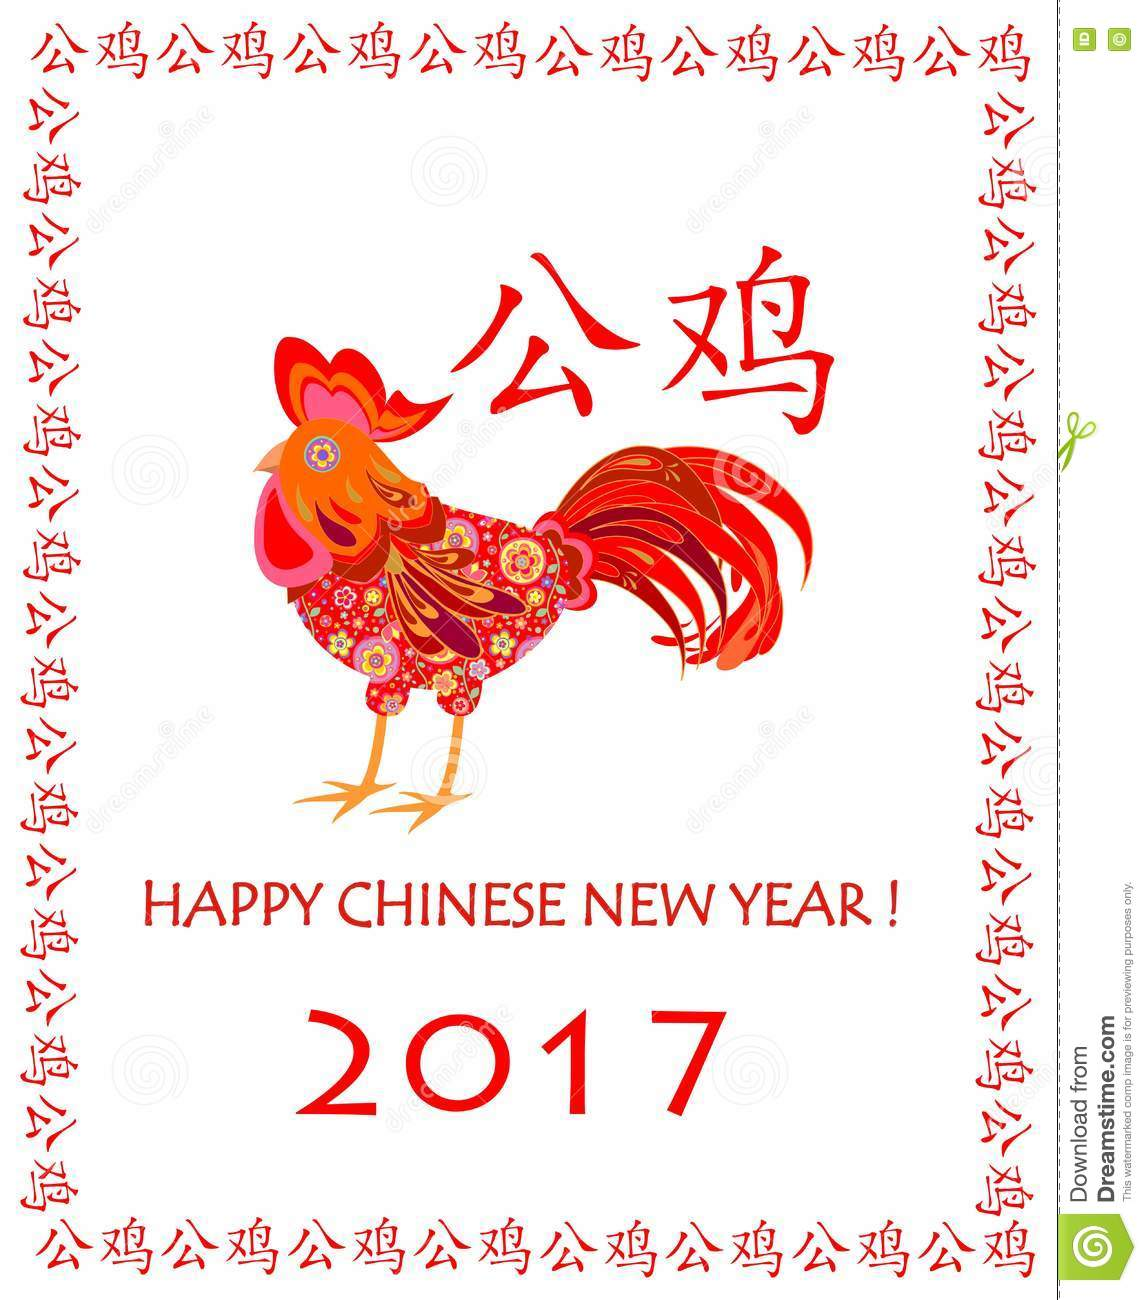 Greeting Applique With Funny Rooster For Chinese New Year Stock ...